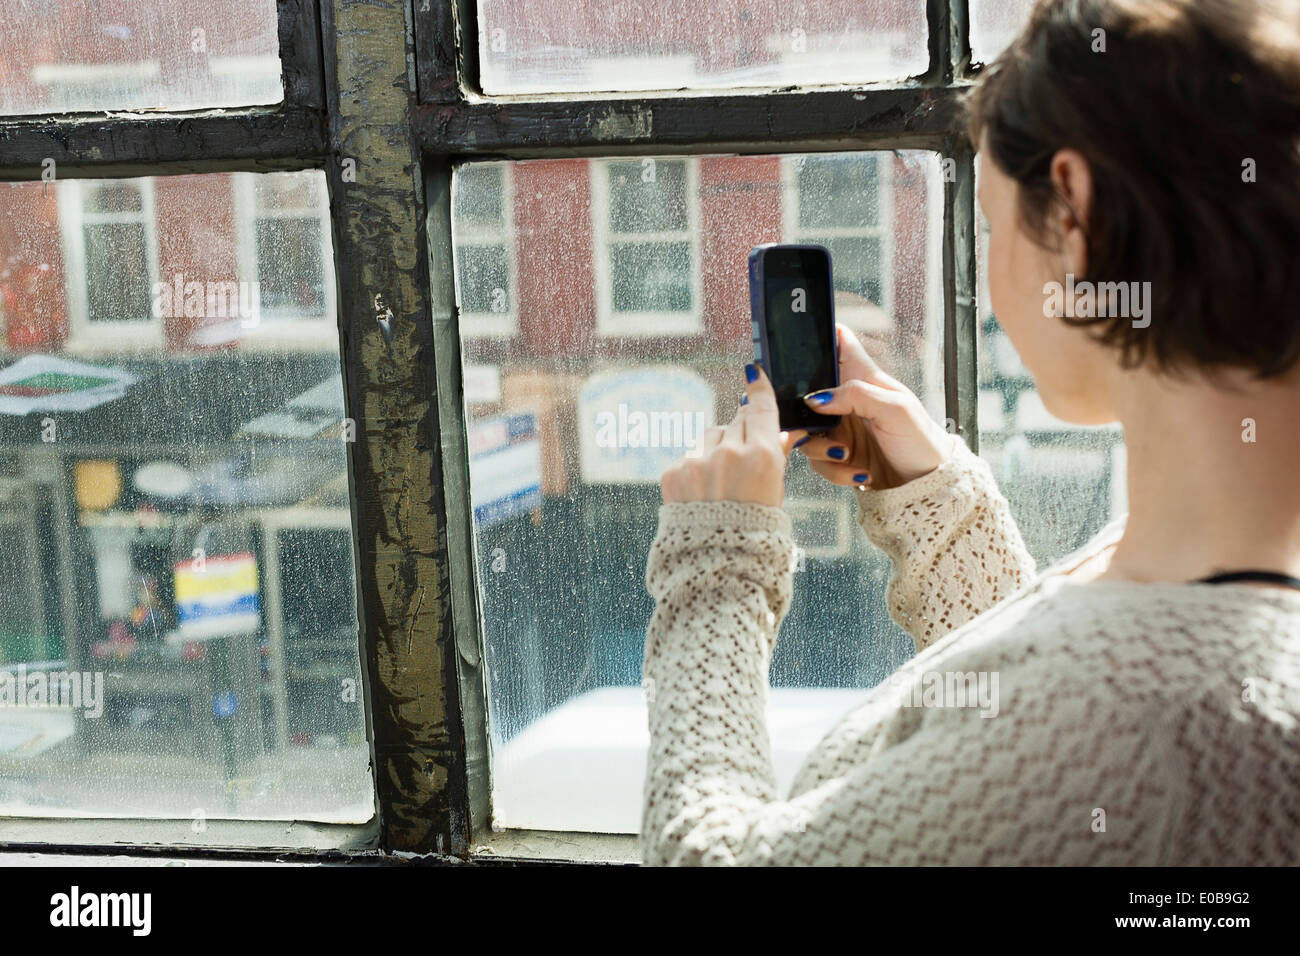 Young woman photographing street below from window - Stock Image